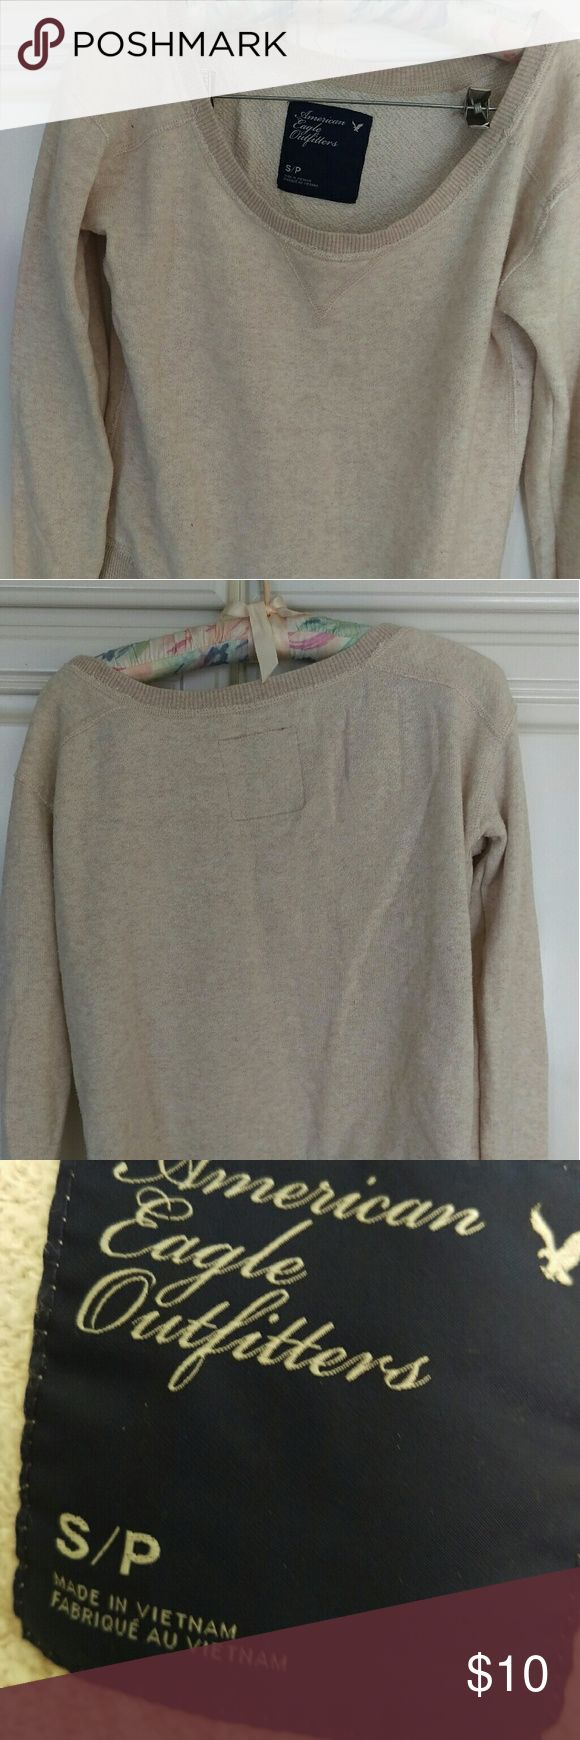 America Outfitters Women's Petite Small sweatshirt Cotton sweatshirt good shape petite small color cream American Eagle Outfitters Tops Sweatshirts & Hoodies